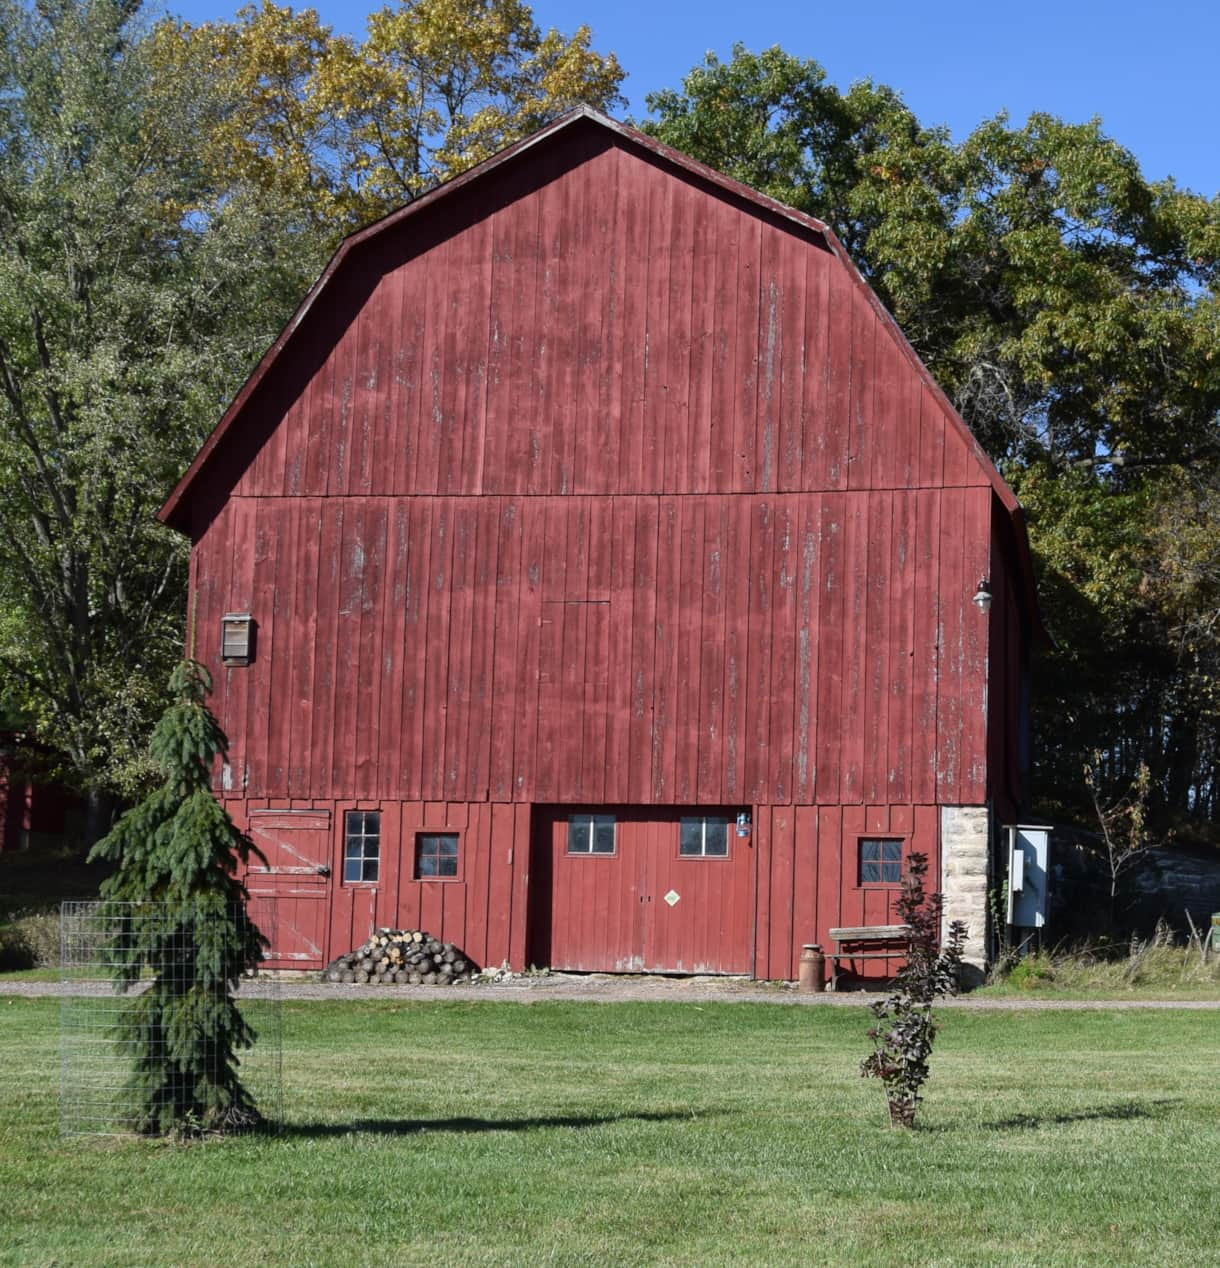 Historic barn at Pine Grove Park Bed and Breakfast Guest House in Reedsburg